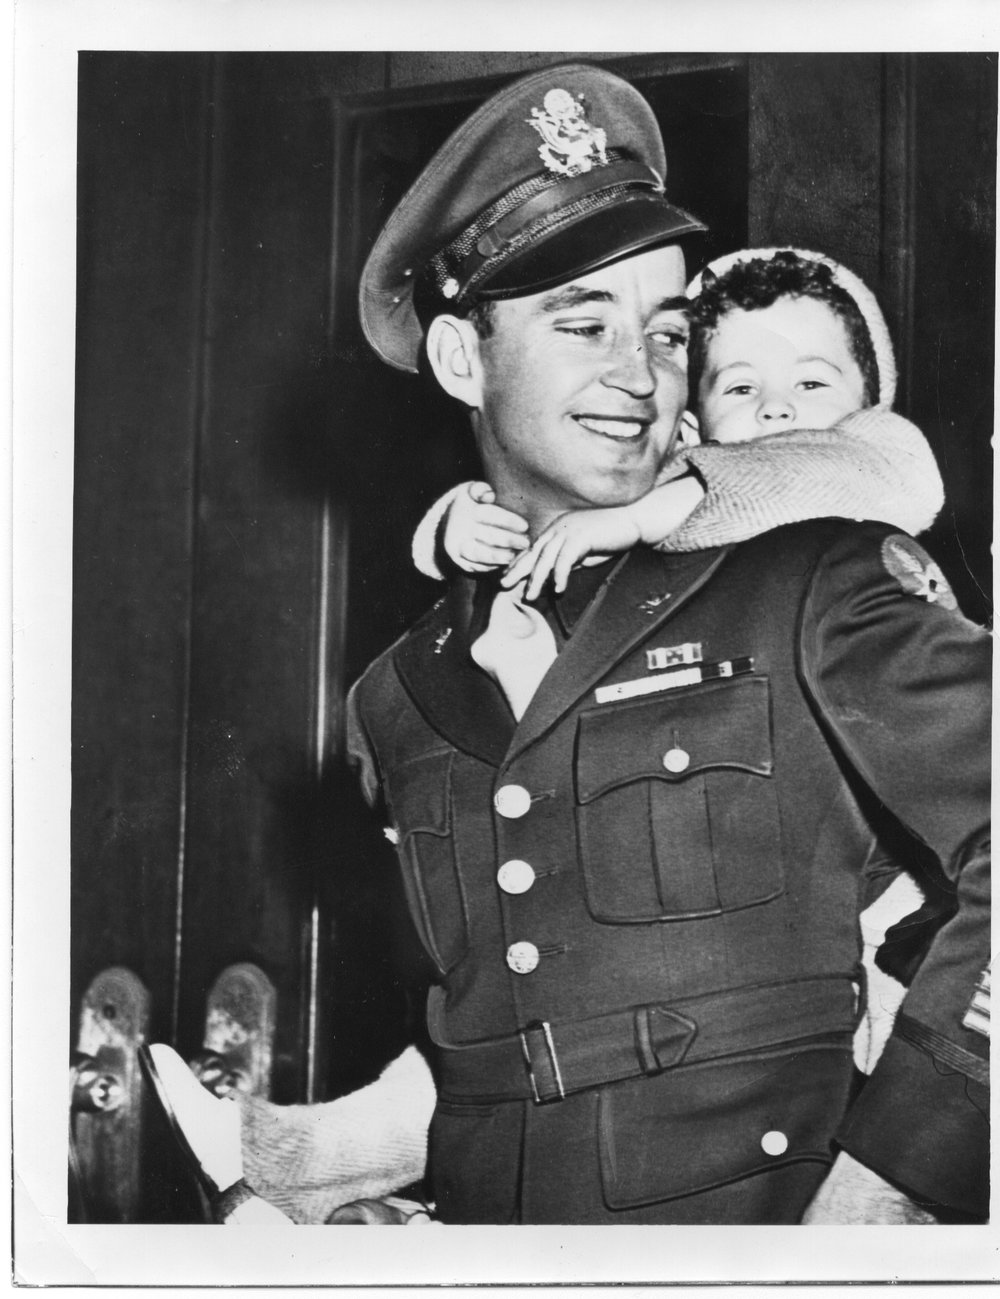 Robert Ball and nephew, 1945